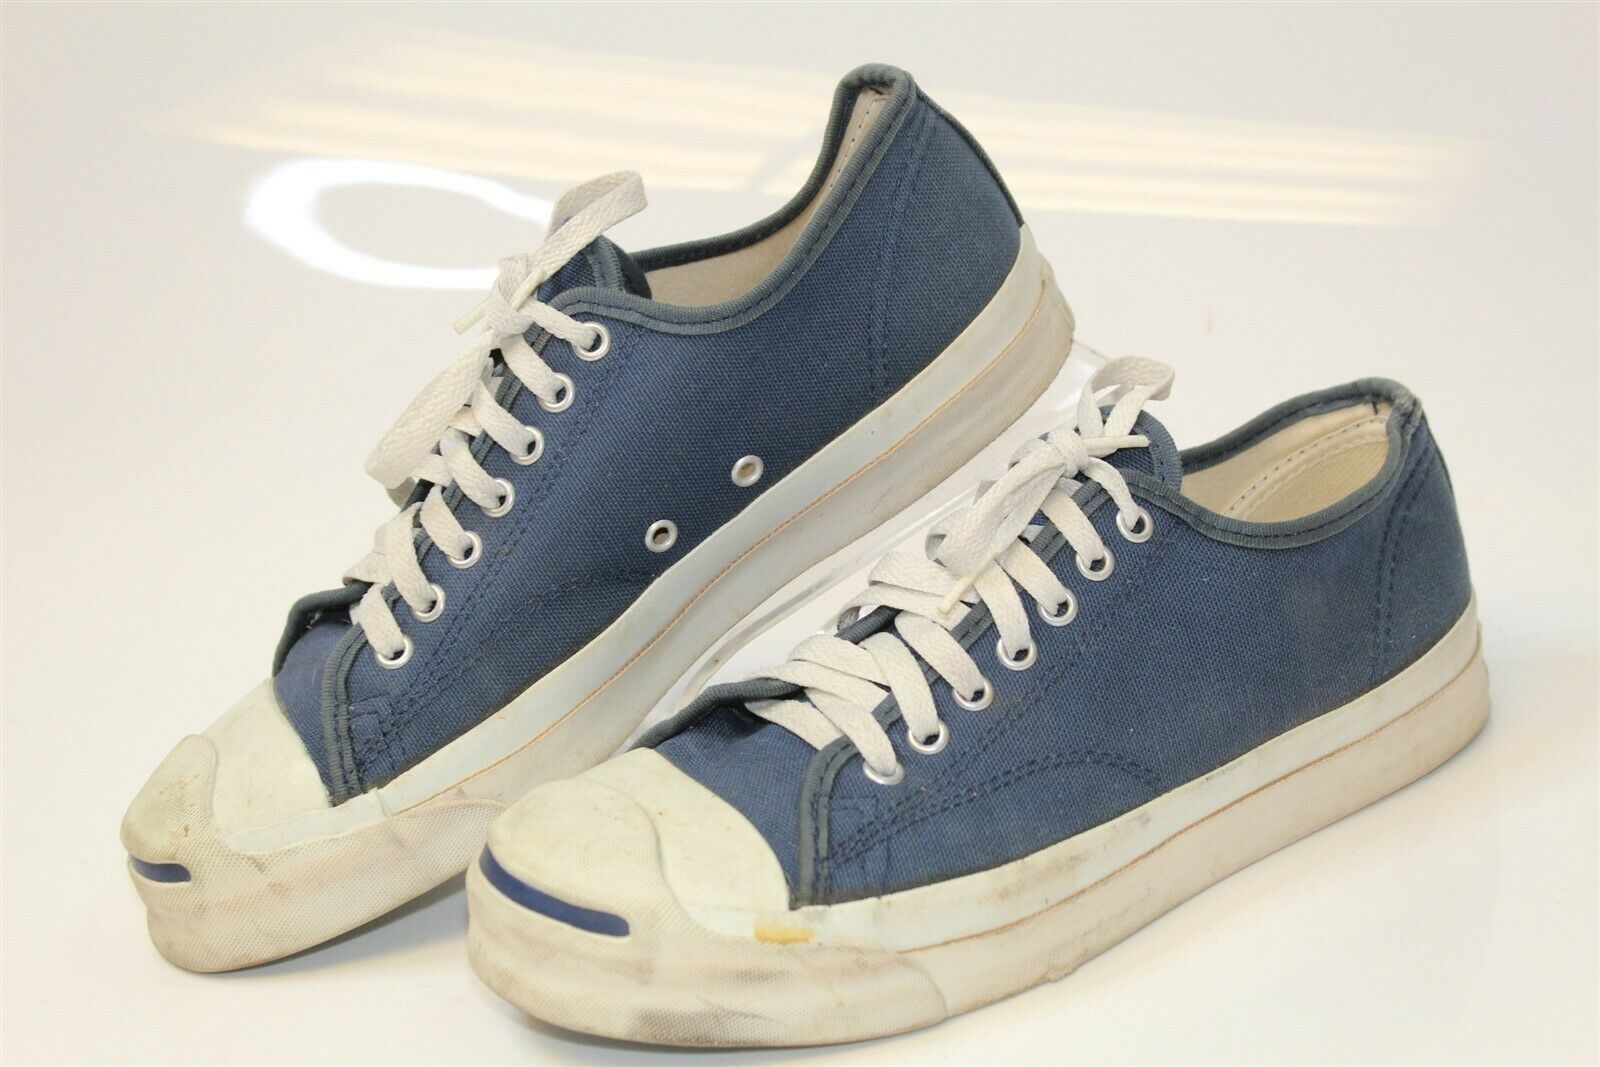 Converse Jack Purcell Vintage OG Mens 9 Navy Canvas Sneakers Shoes MADE IN USA